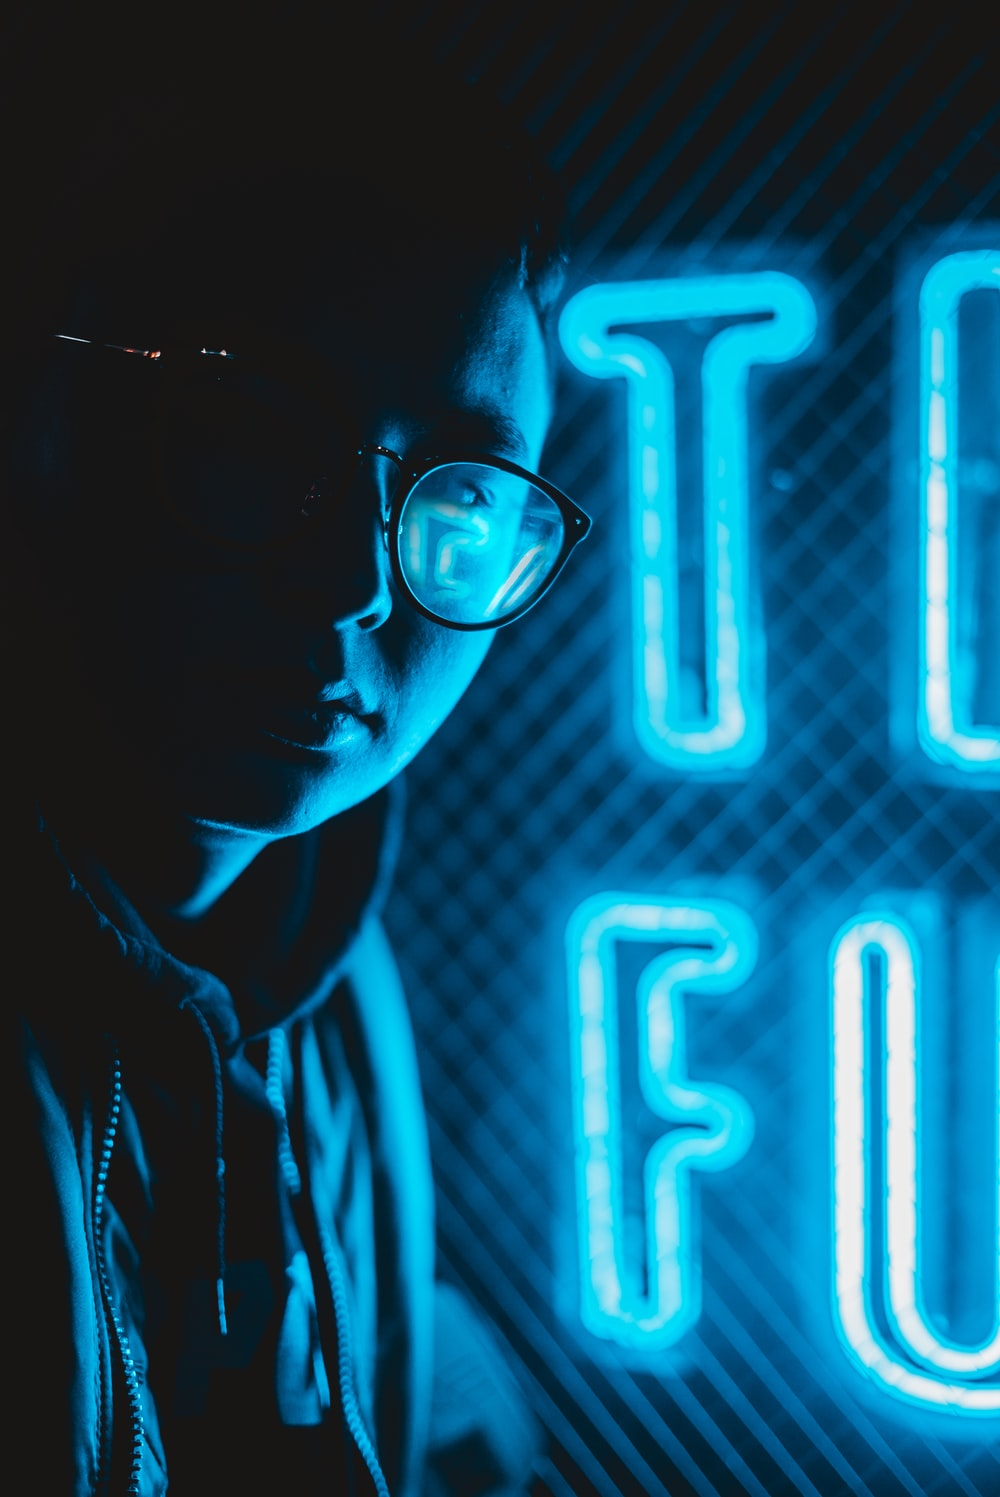 person in eyeglasses beside blue neon signage